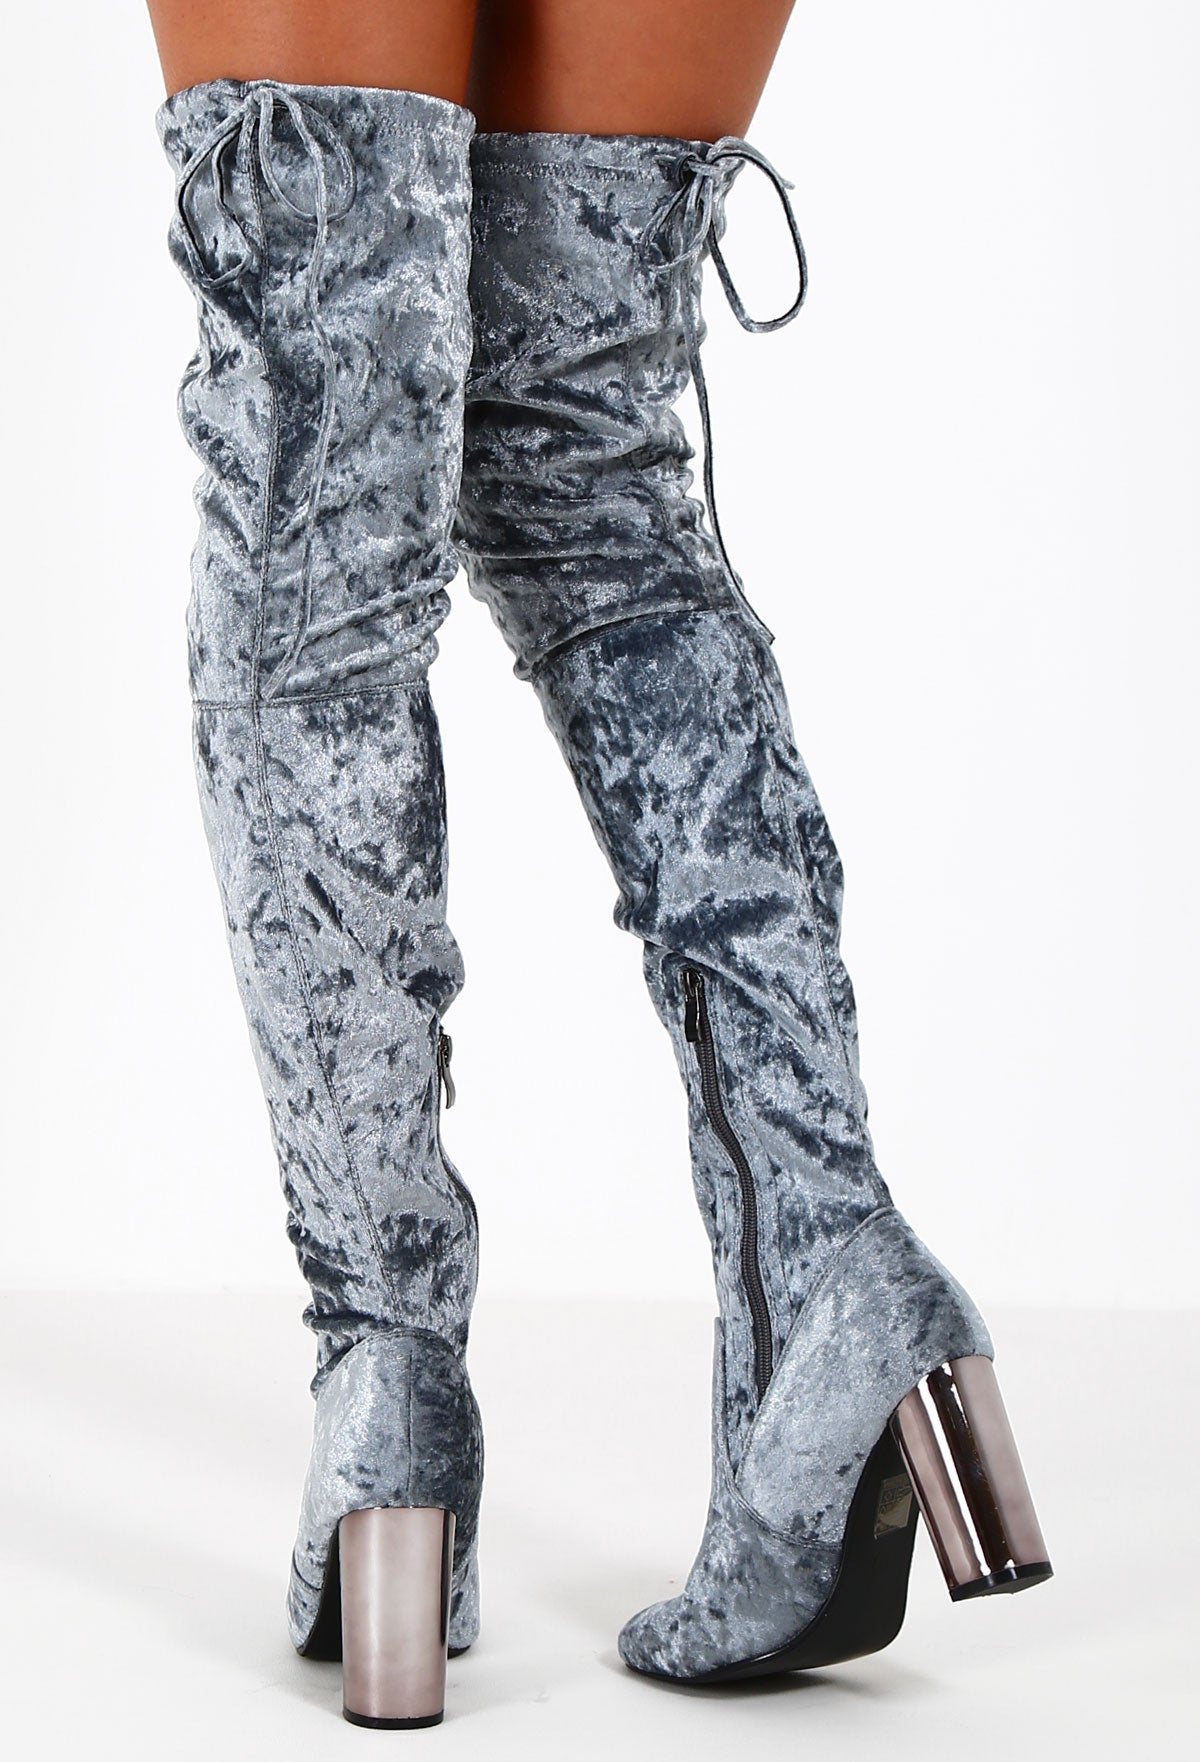 6e16eeb6fe6 Fortune Grey Crushed Velvet Over The Knee Boots – Pink Boutique UK